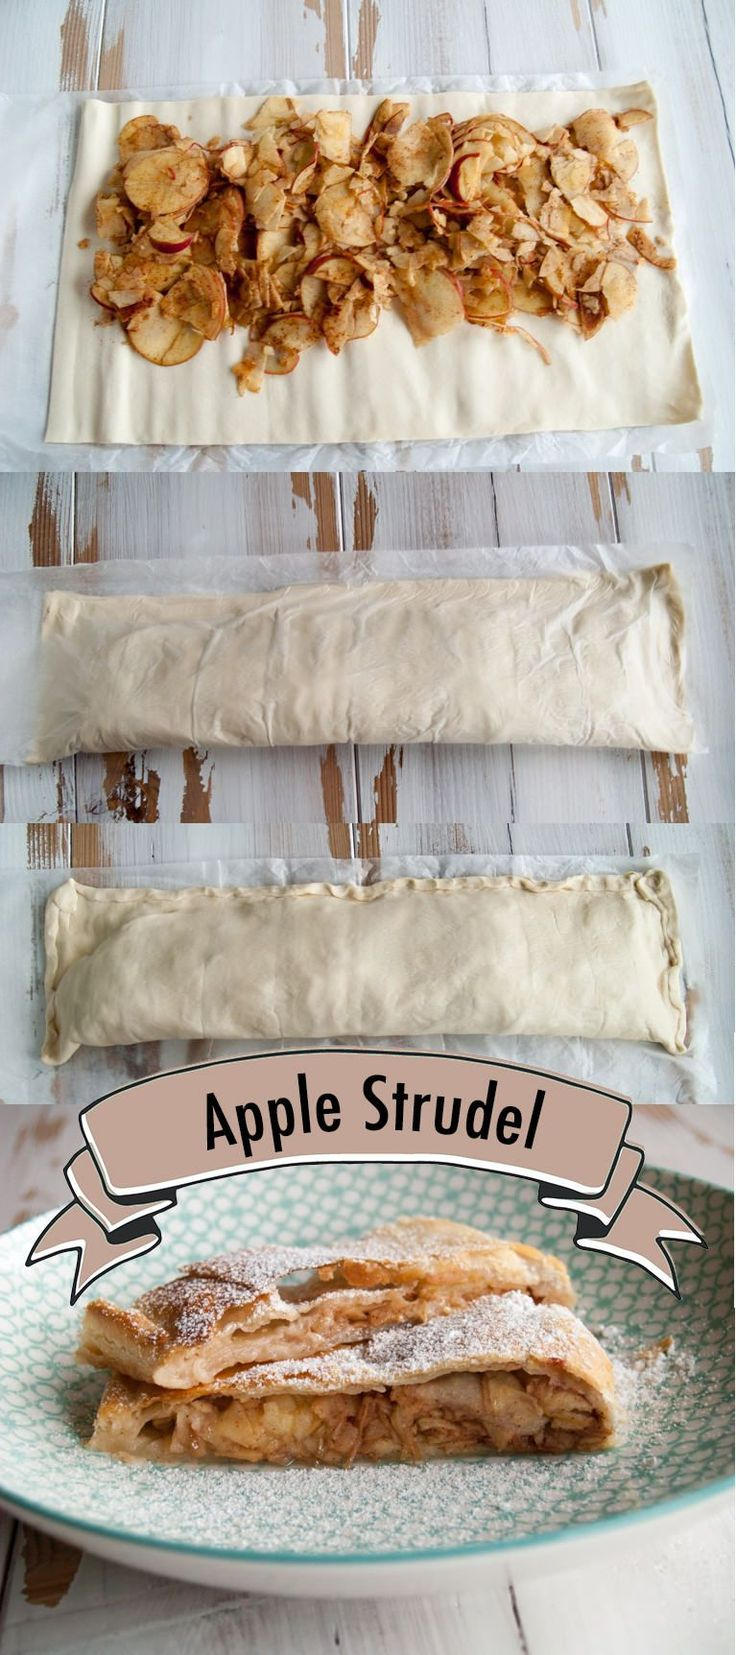 #vegan Apple Strudel #VeganDesserts